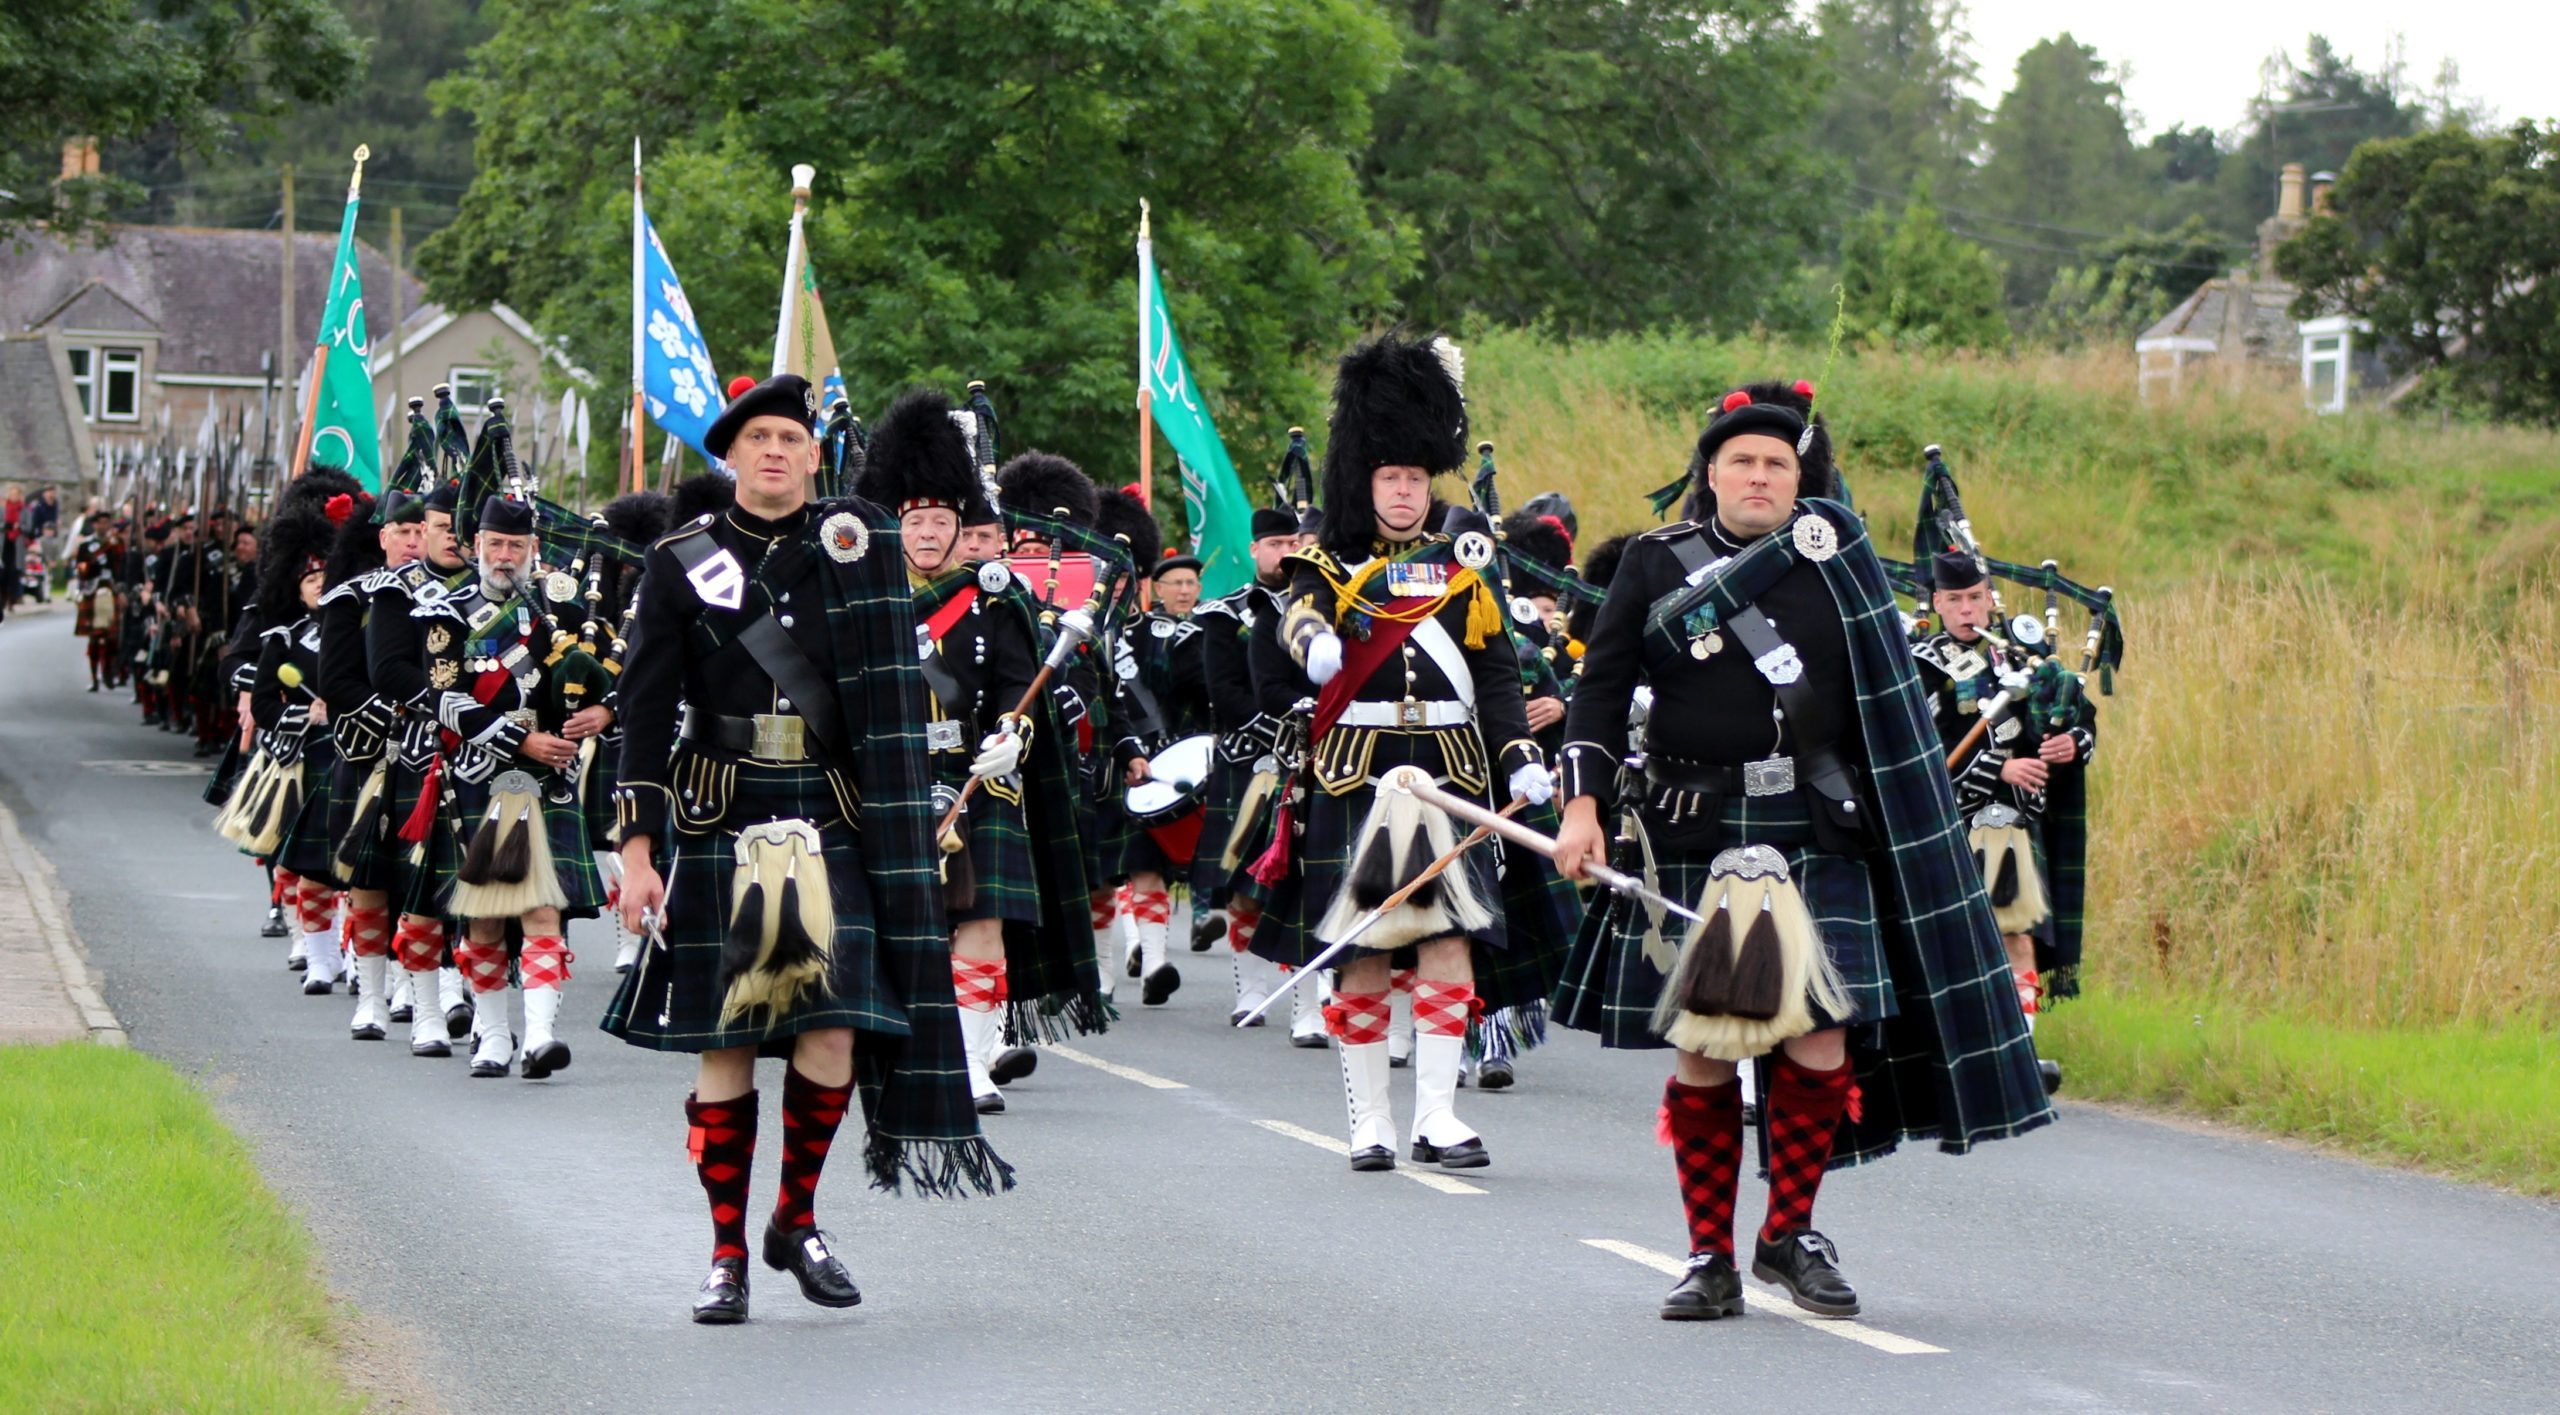 The Lonach Highlanders marching through Bellabeg.